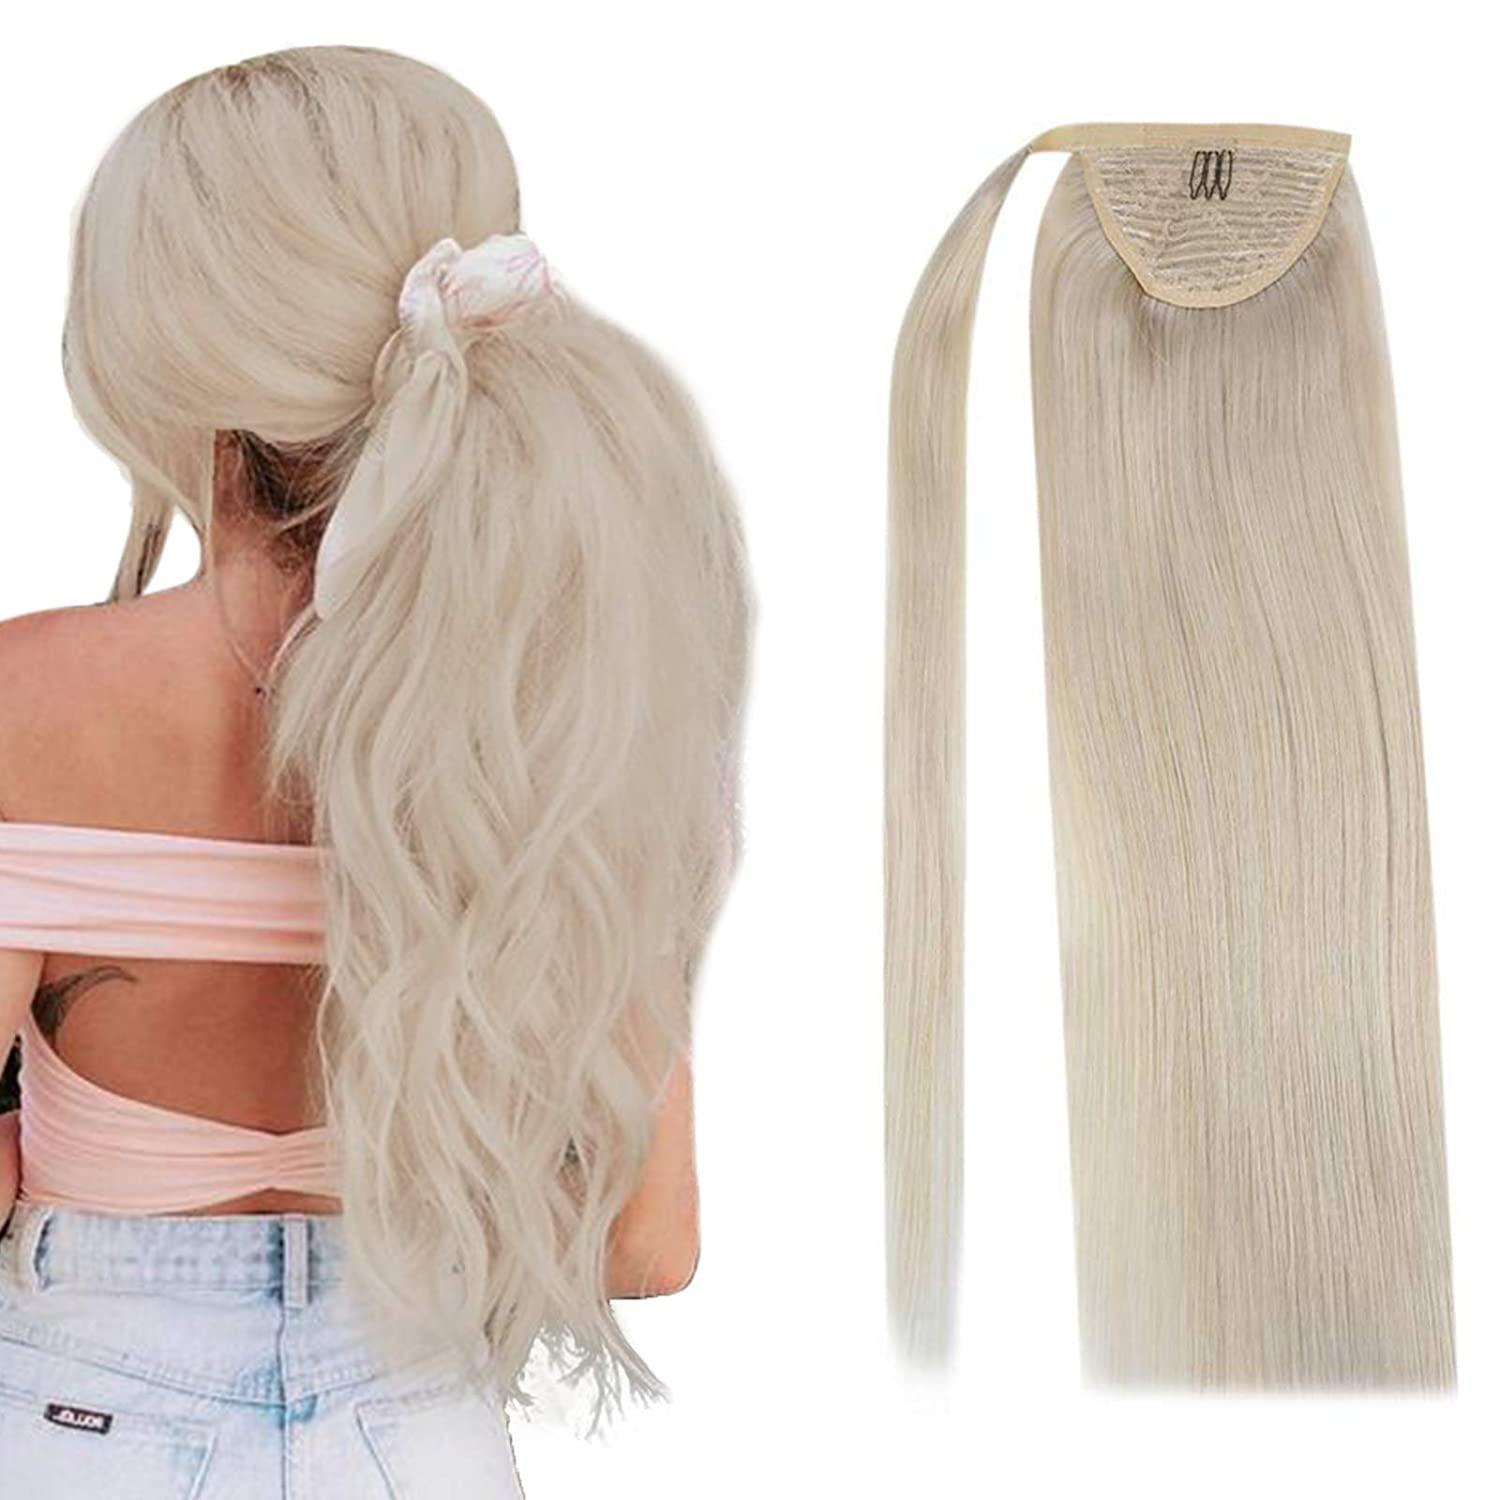 Sunny Blonde Fees free Ponytail Extensions 18 Hair inch Human Elegant Wrap Around